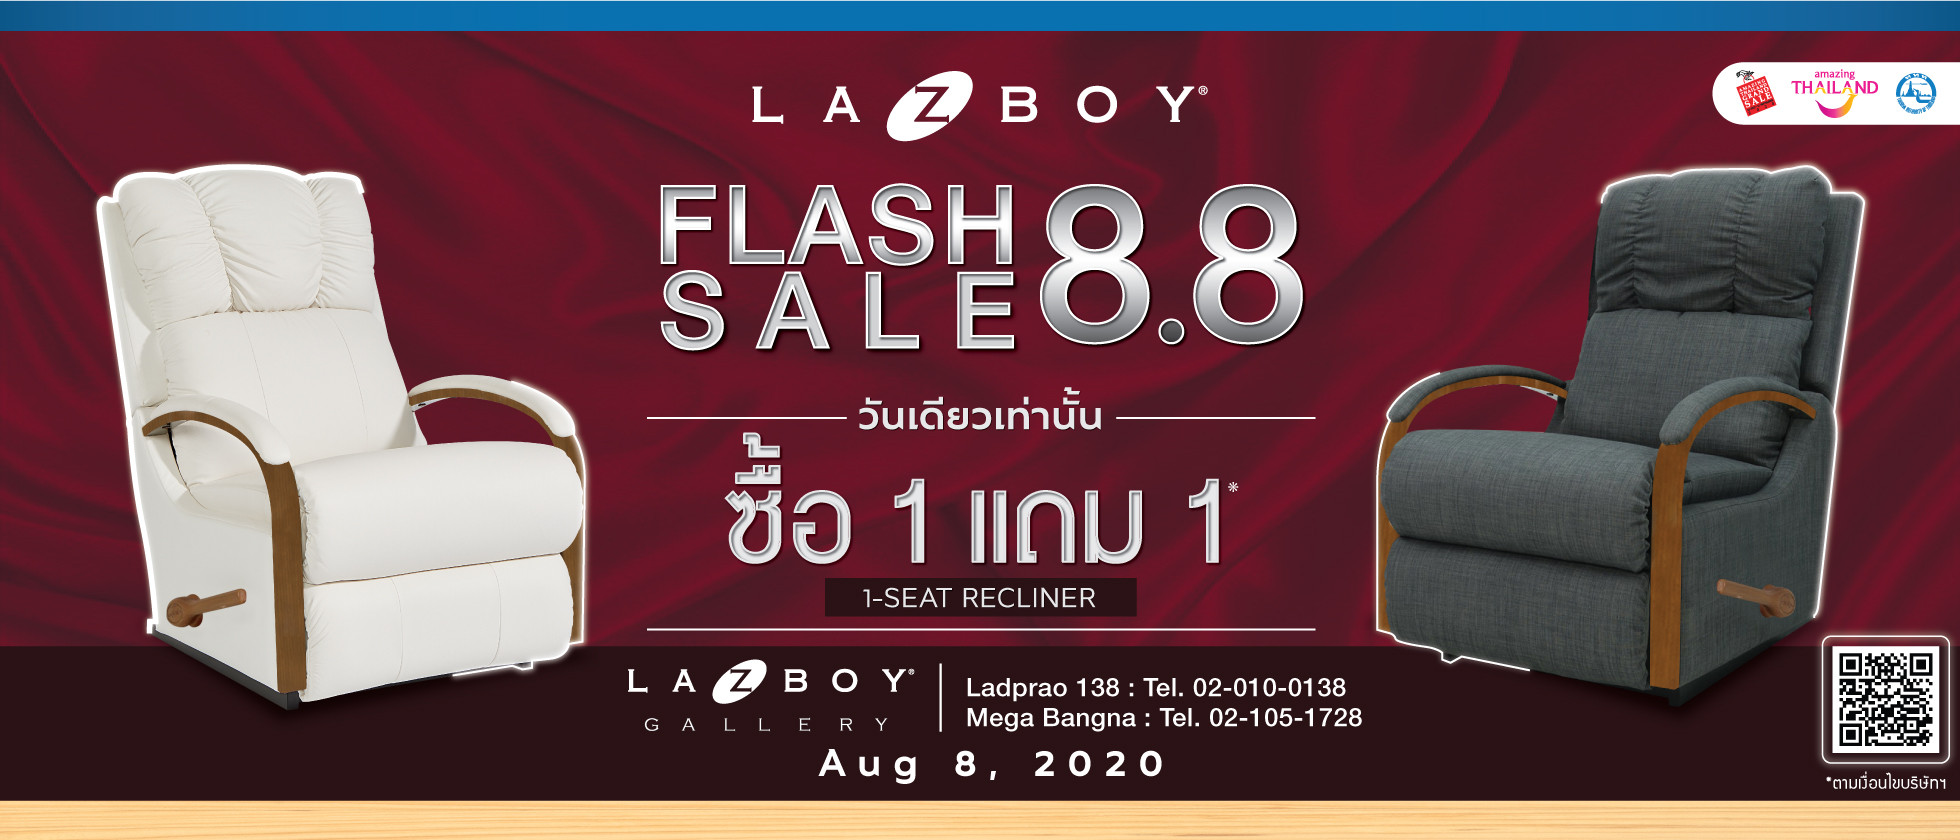 Flash Sale 8.8